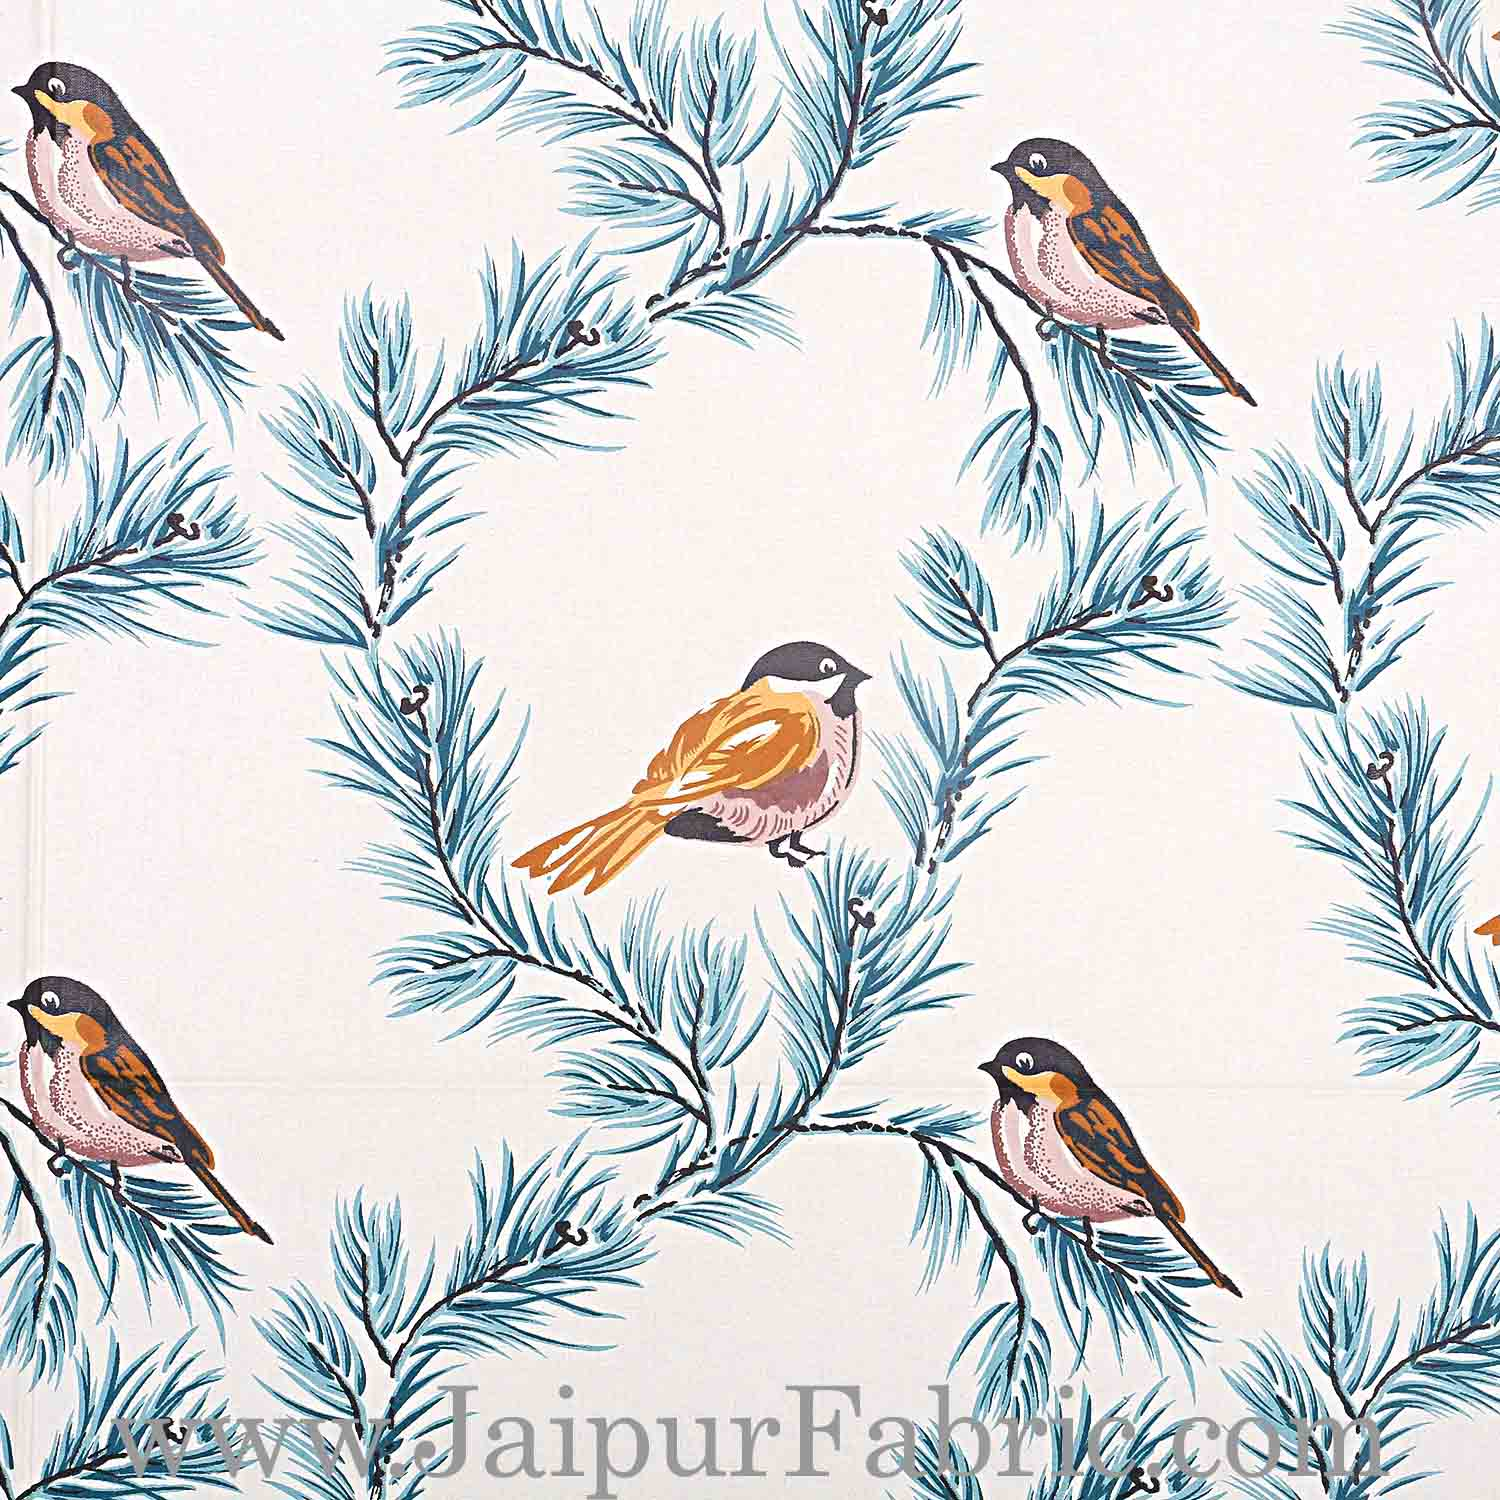 Pure Cotton 240 TC Double bedsheet indian bird print blue